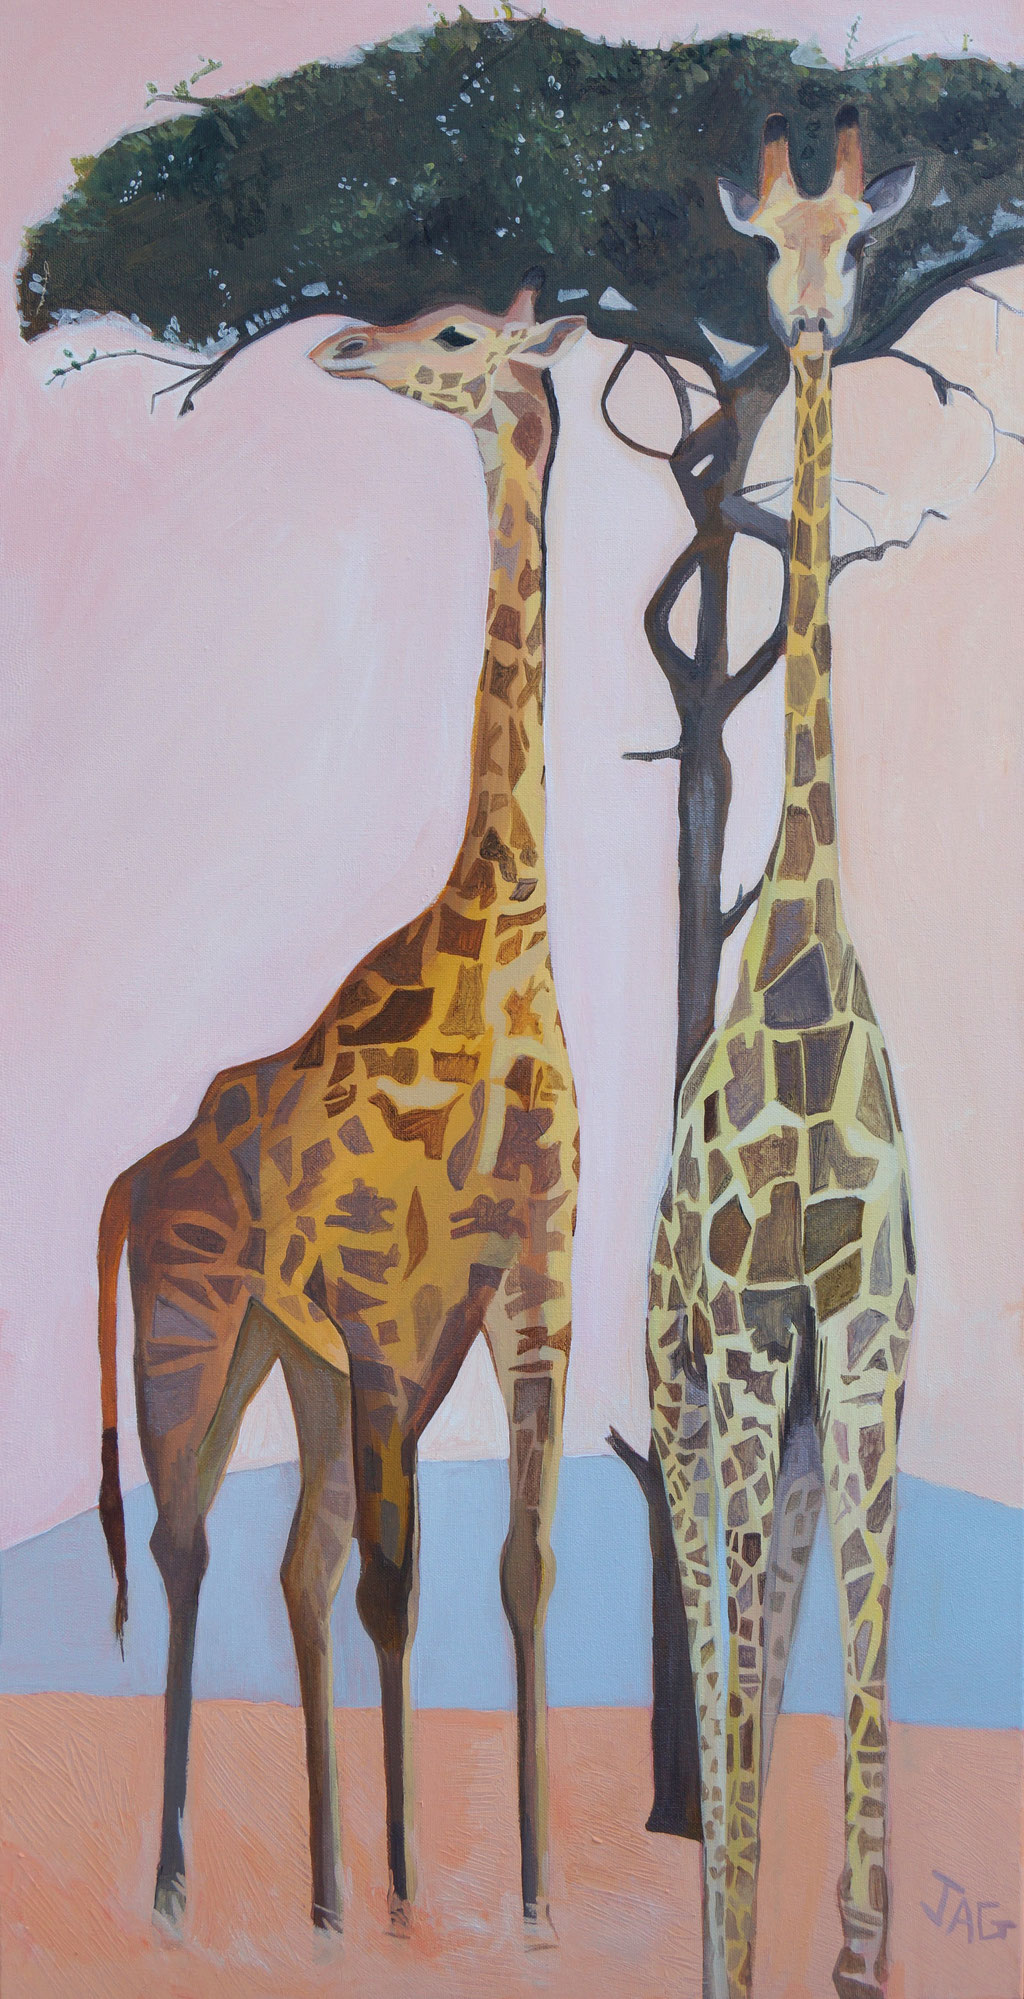 'Larger than life' acrylic on canvas 2019, 50 x 100cm - SOLD